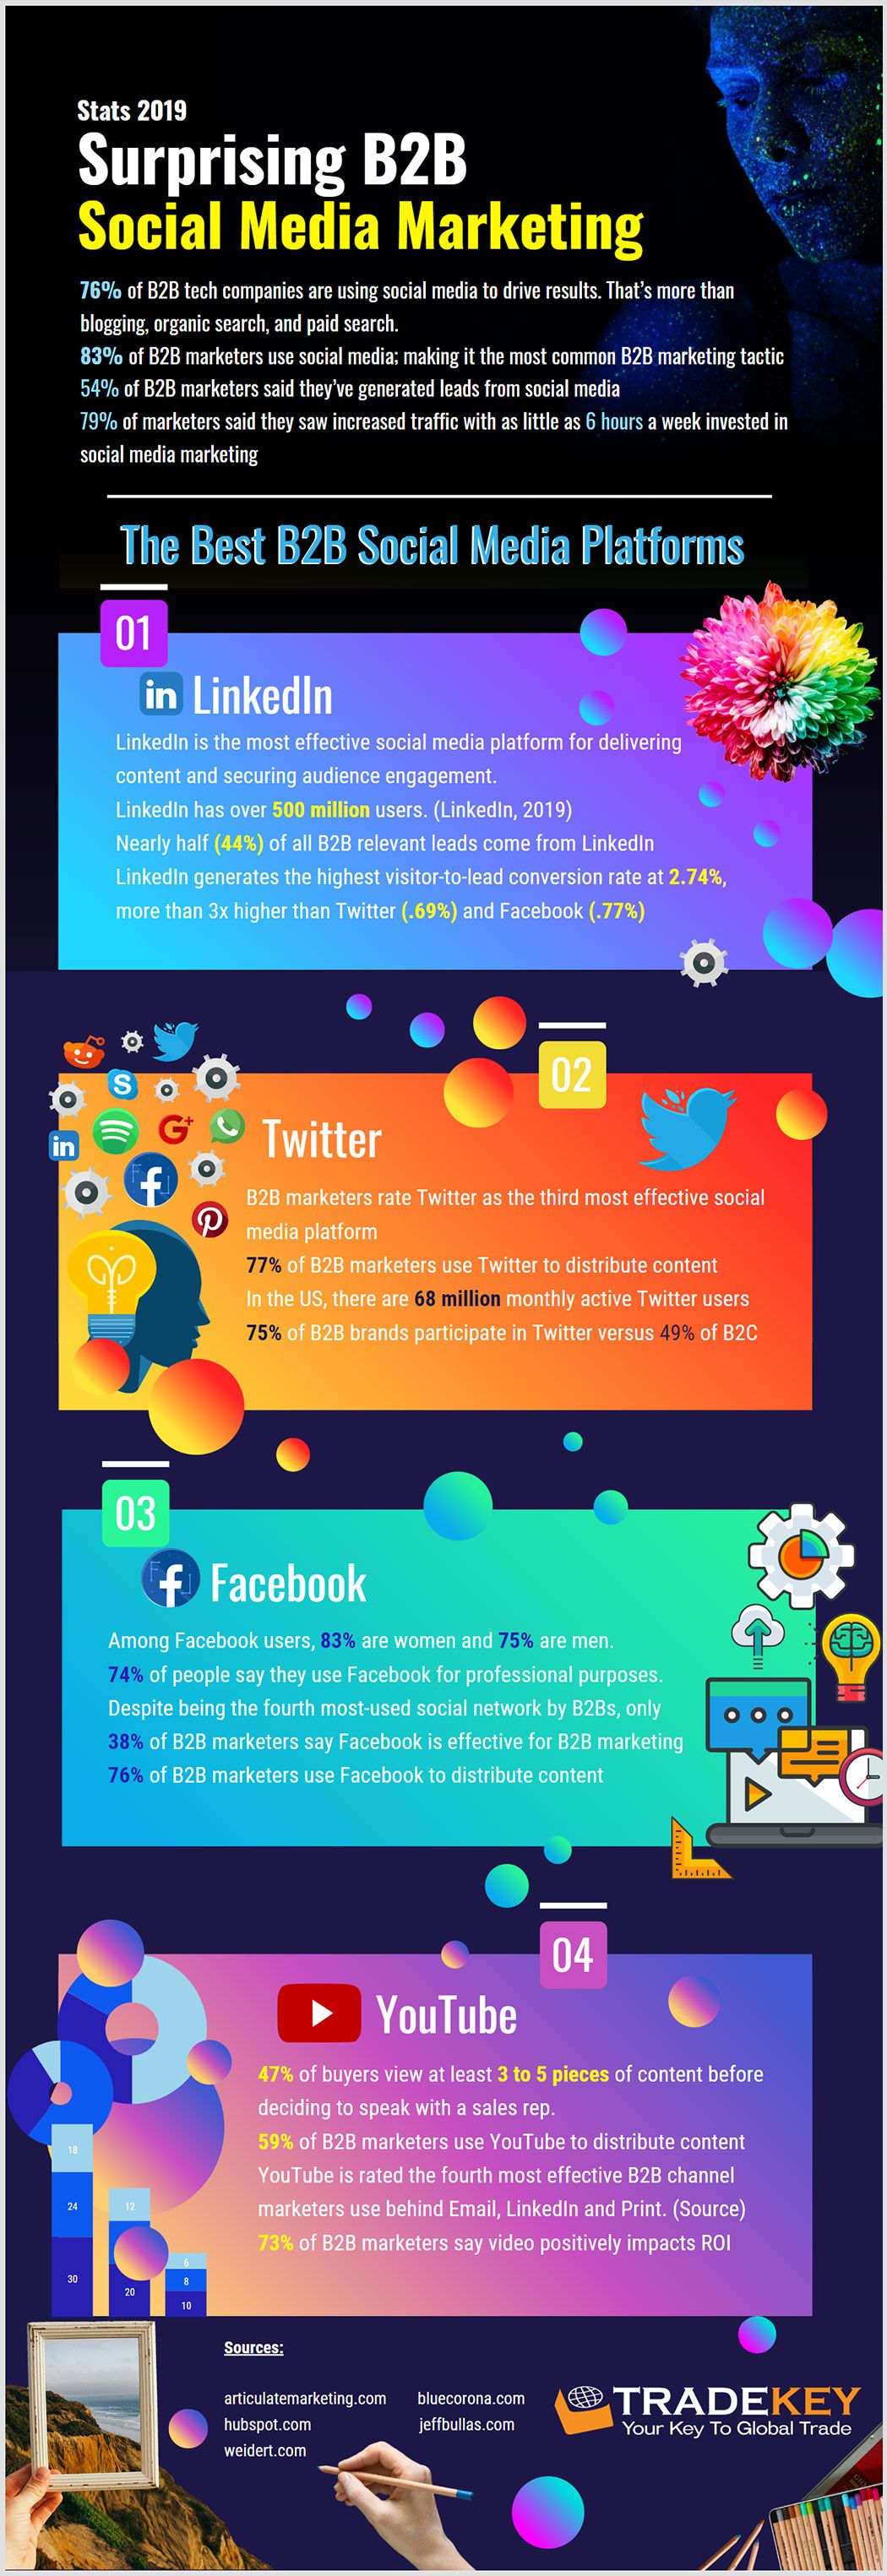 Surprising B2B Social Media Marketing Stats 2019